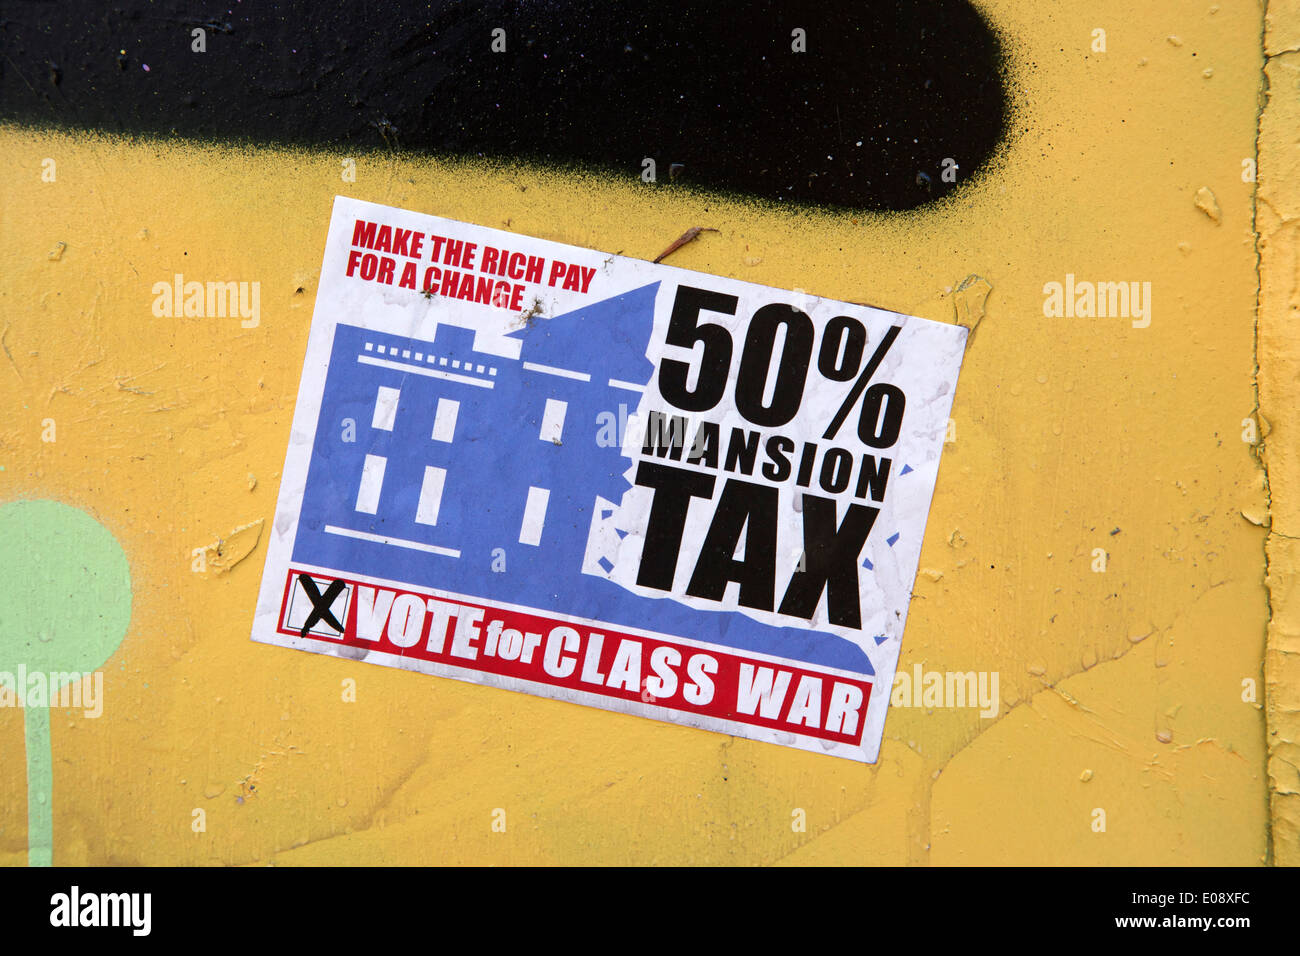 'Make the rich pay for a change'. Sticker looking for class war - Stock Image